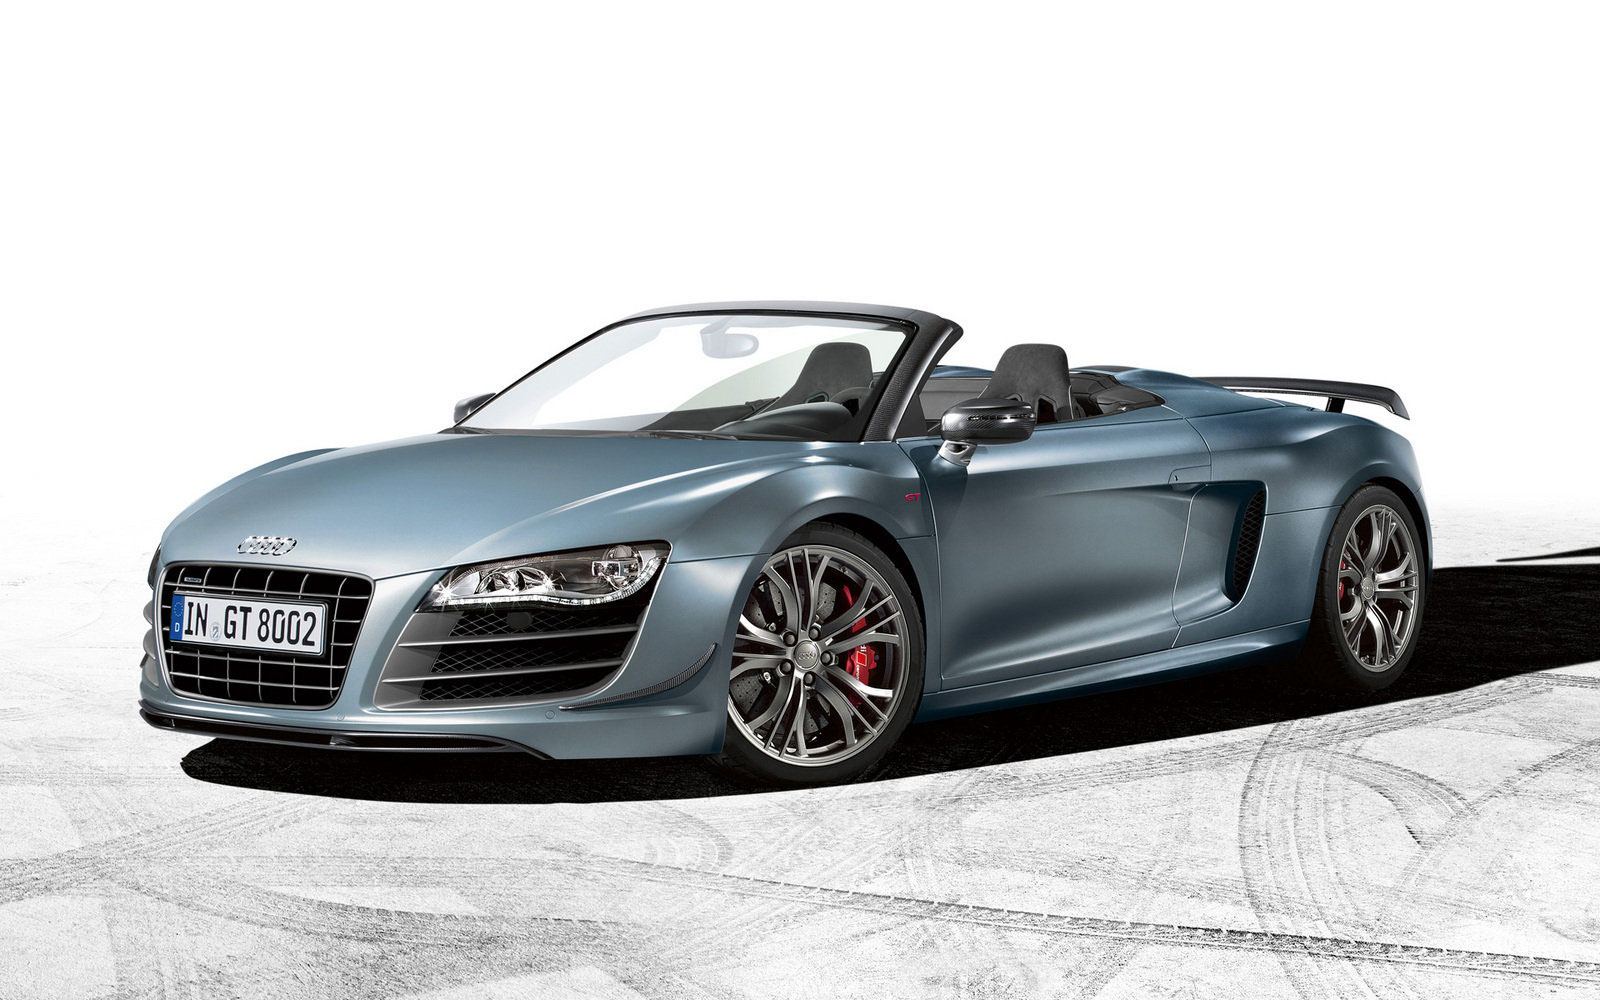 2012 Audi R8 GT Spyder Officially Announced Wallpaper Blognya Erwin Miradi